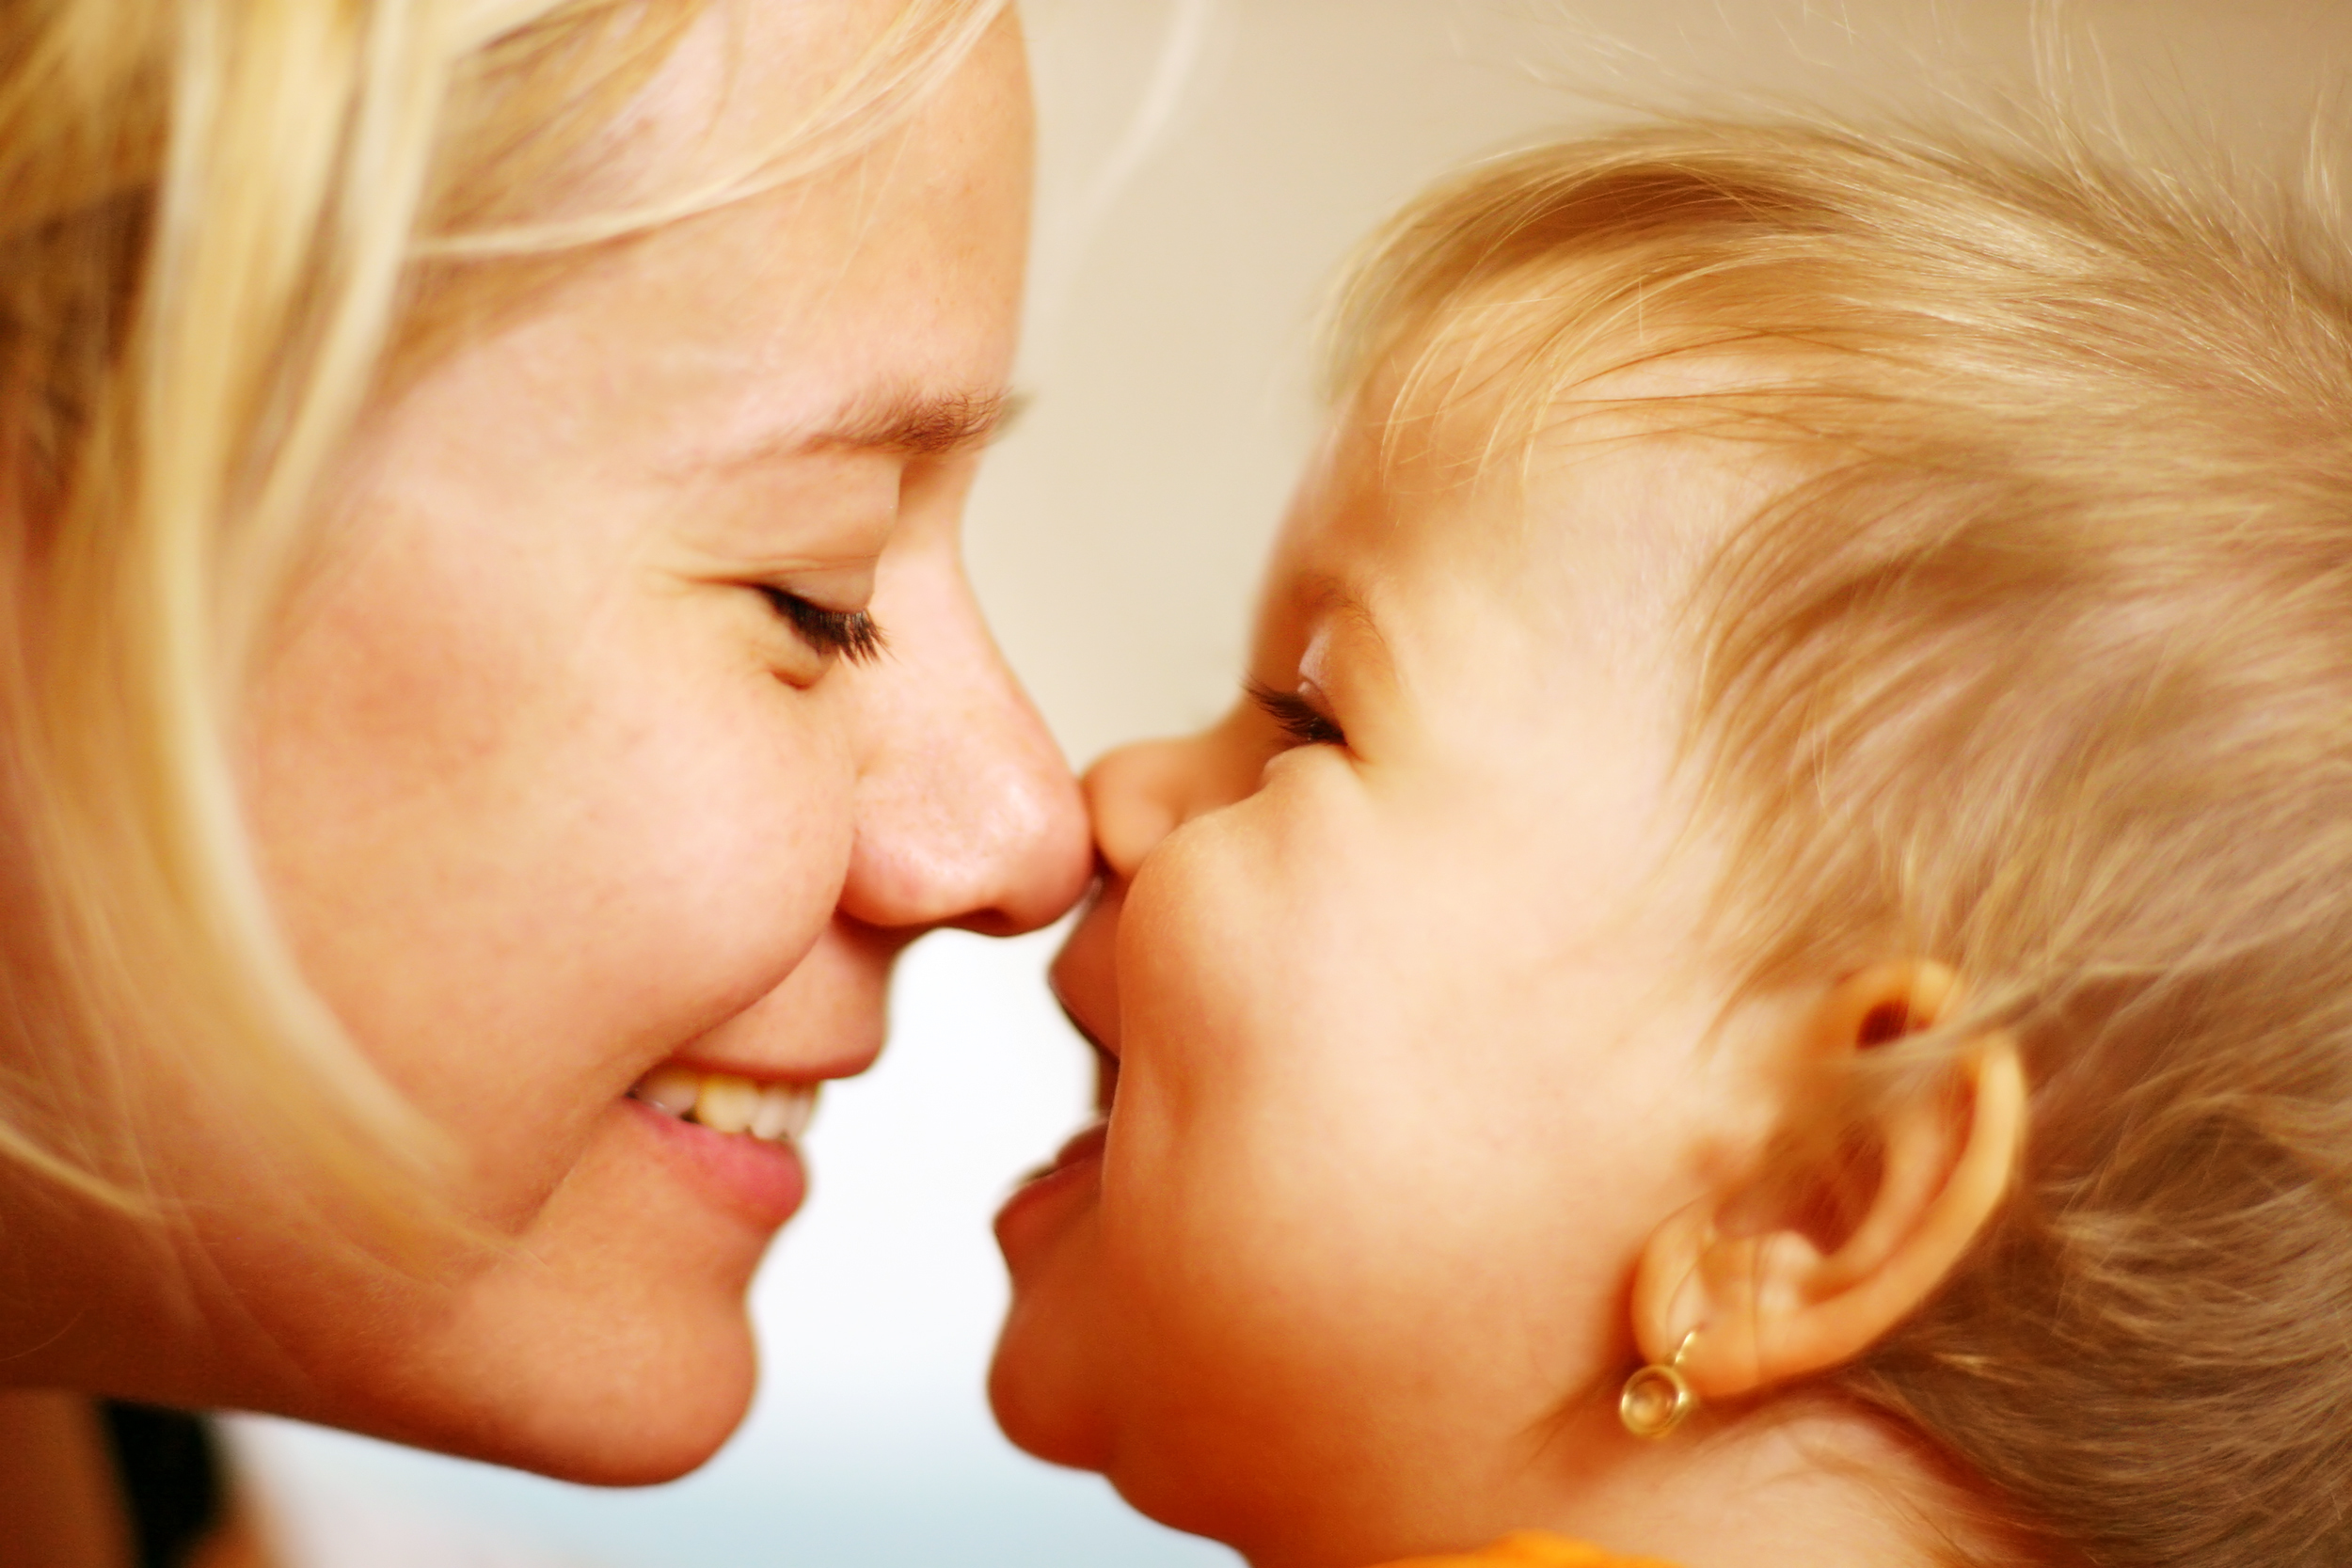 Mother And Child Wallpapers High Quality Download Free